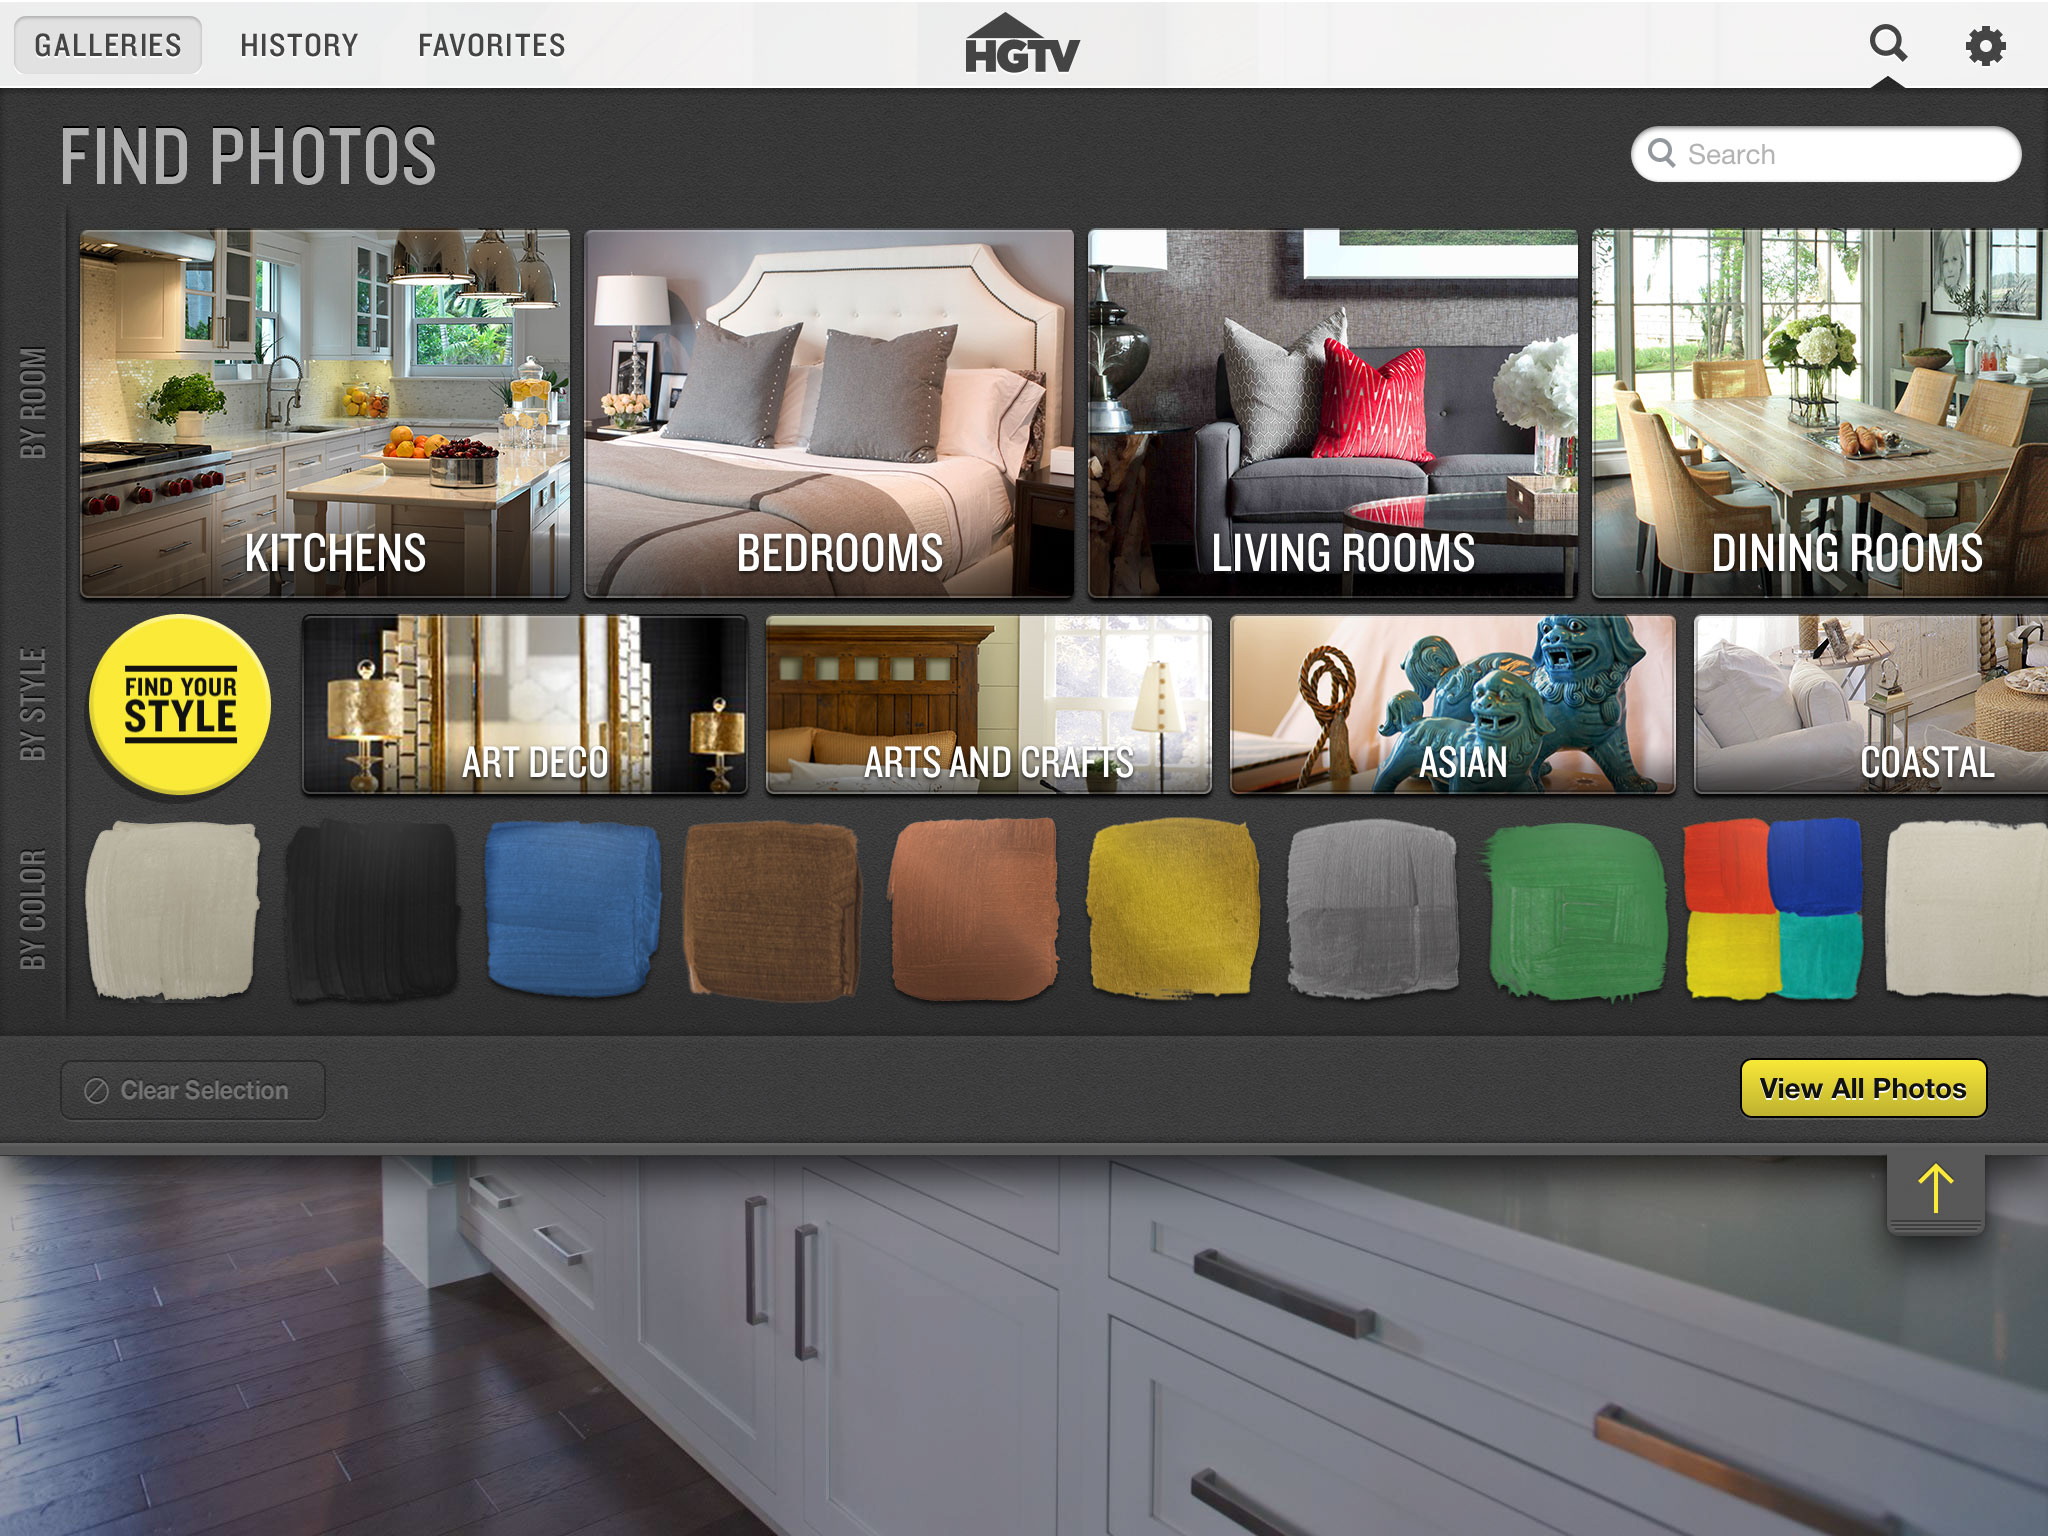 find your home decorating style quiz - Decorating Style Quiz